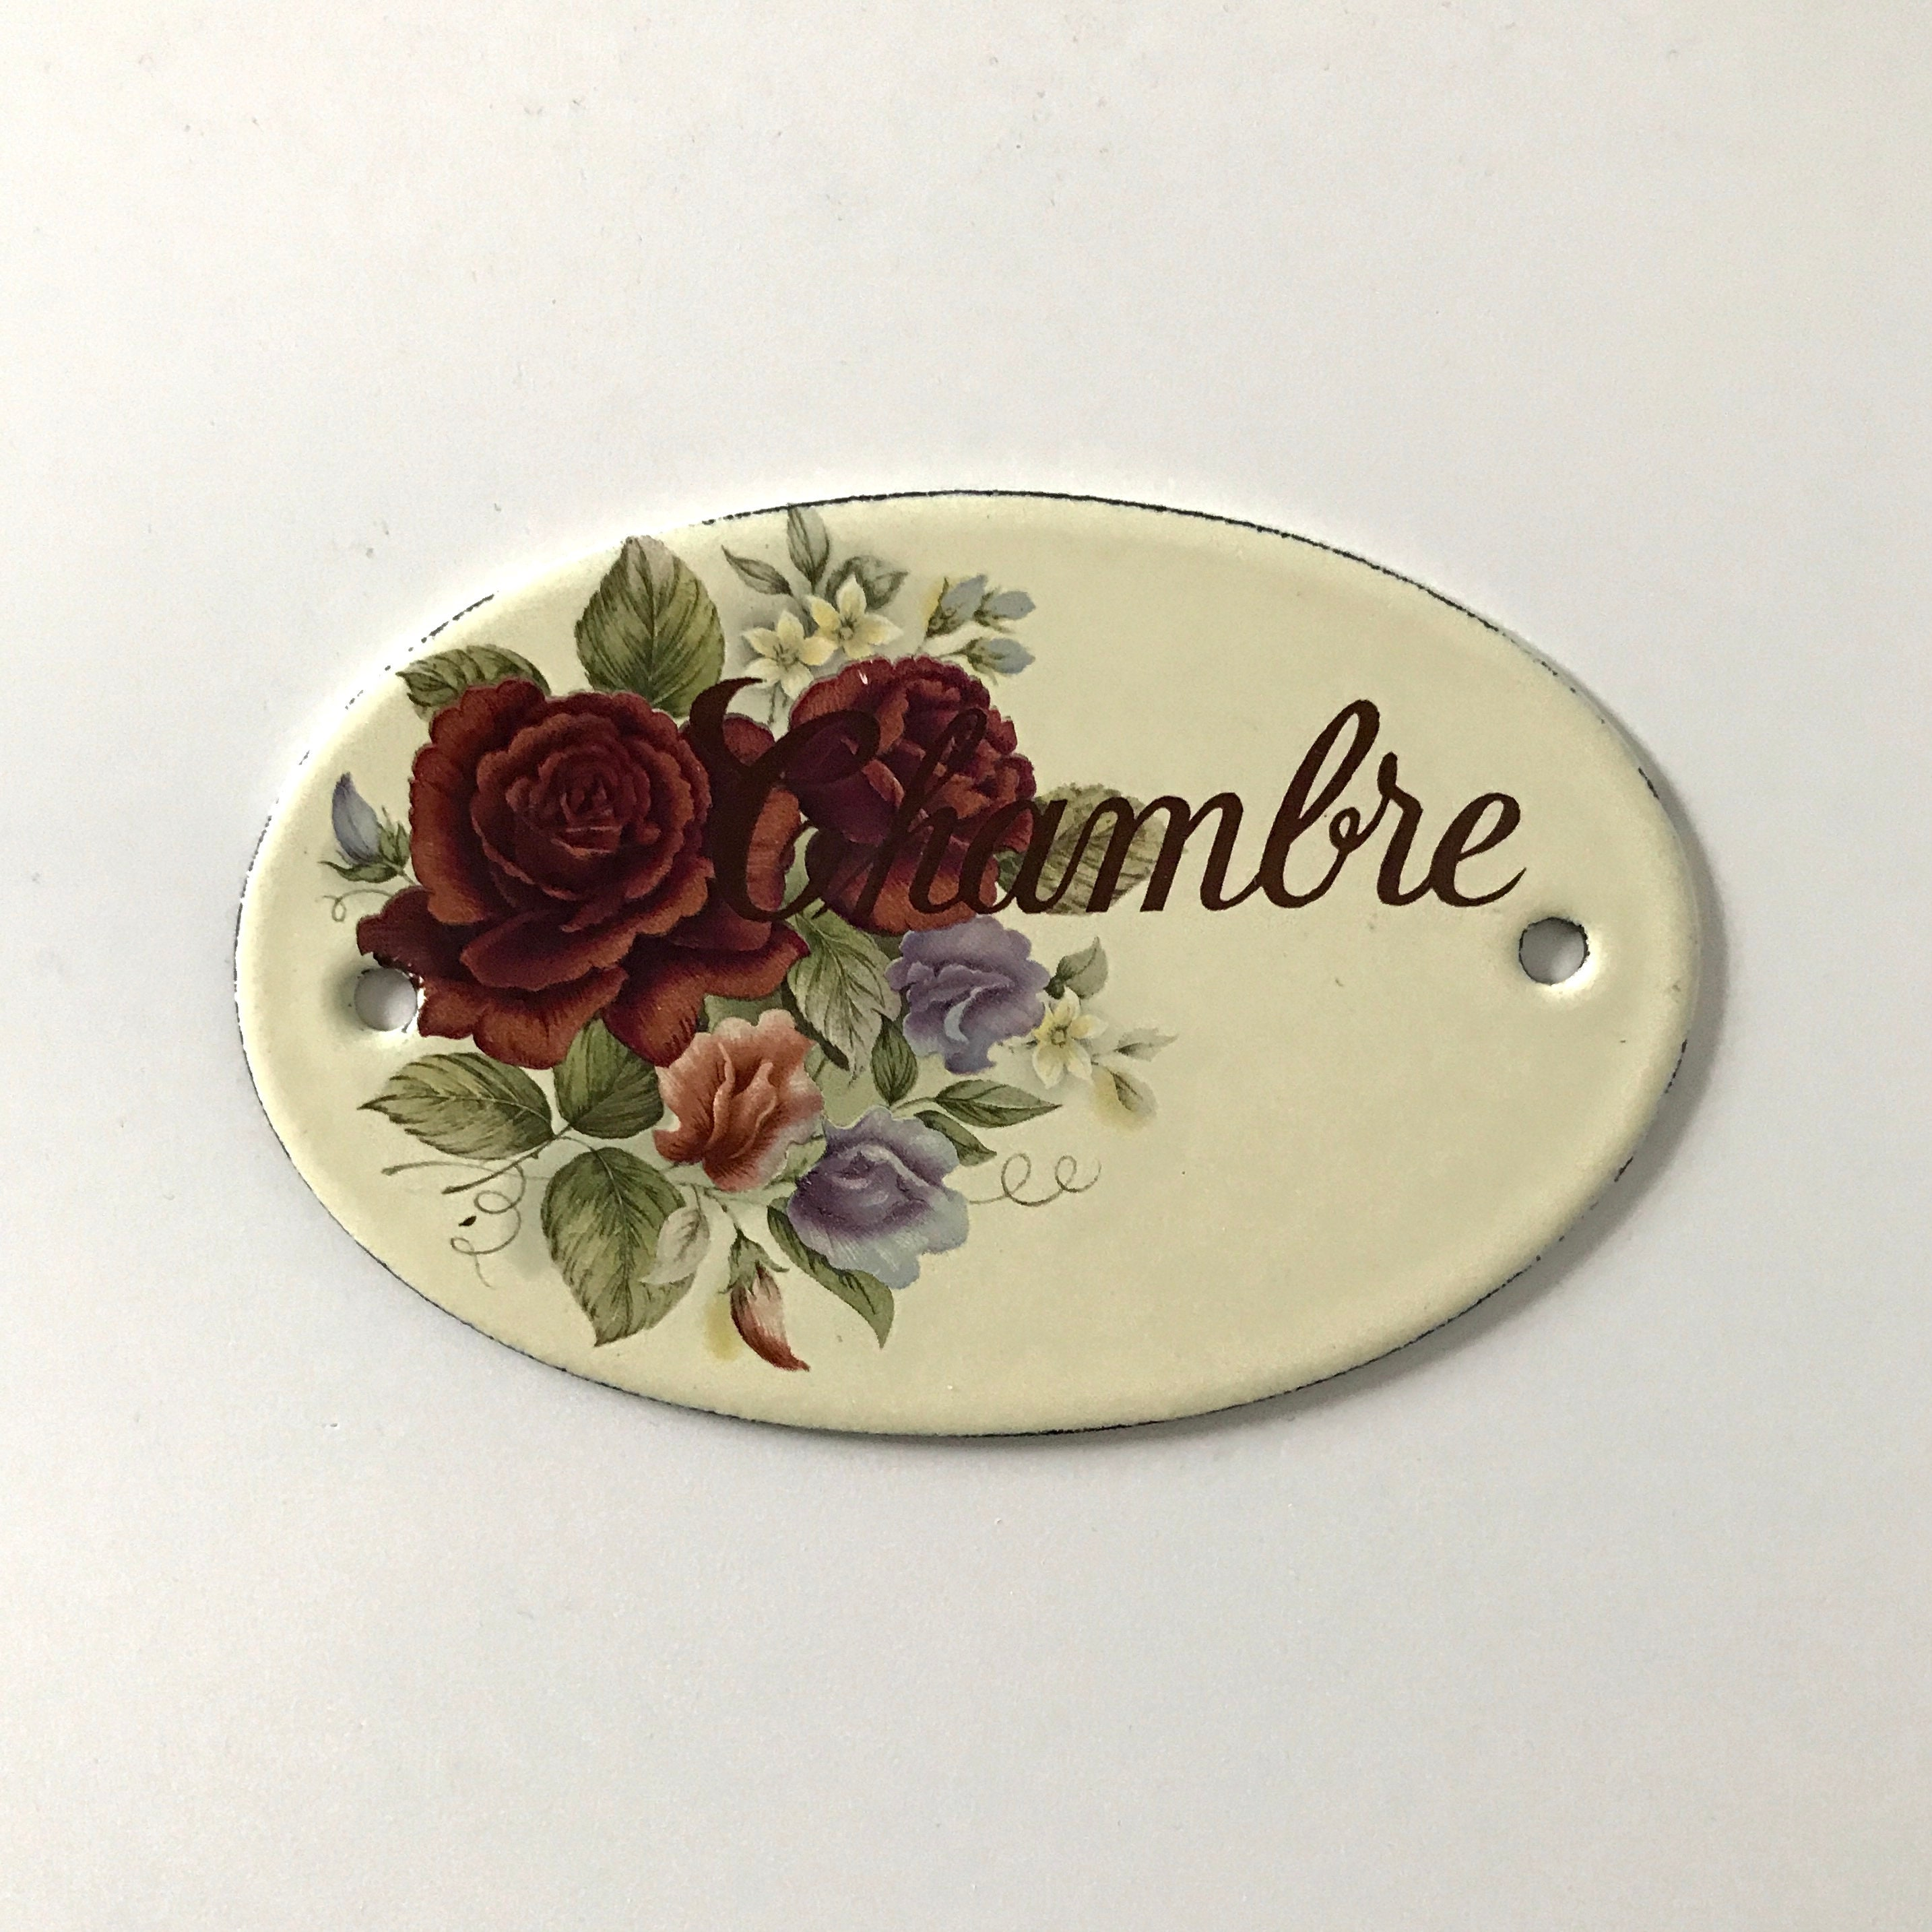 Chambre Style Shabby Chic french door sign / enamel / french / chambre / room / floral / off-white /  beige / cottage style / romantic / shabby chic / home decor